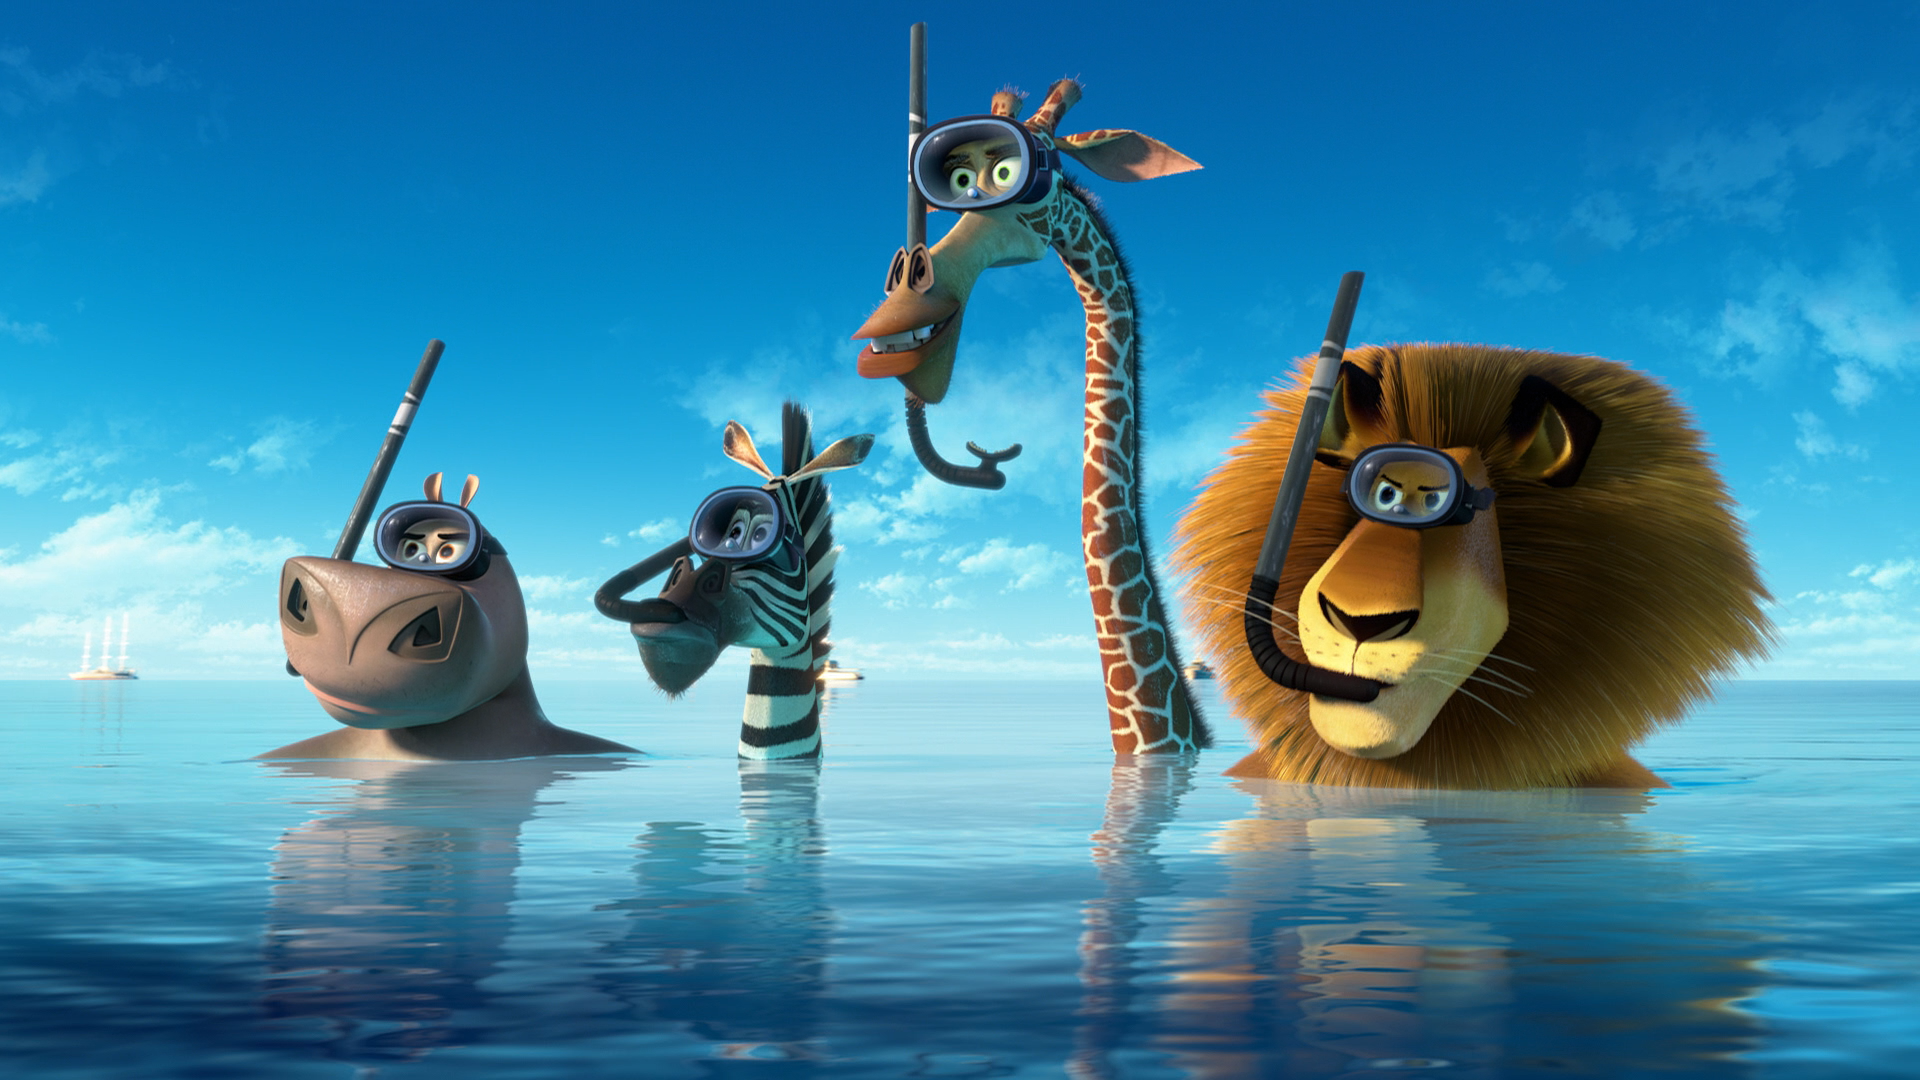 Madagascar wallpaper 1920x1080 48445 - Madagascar wallpaper ...